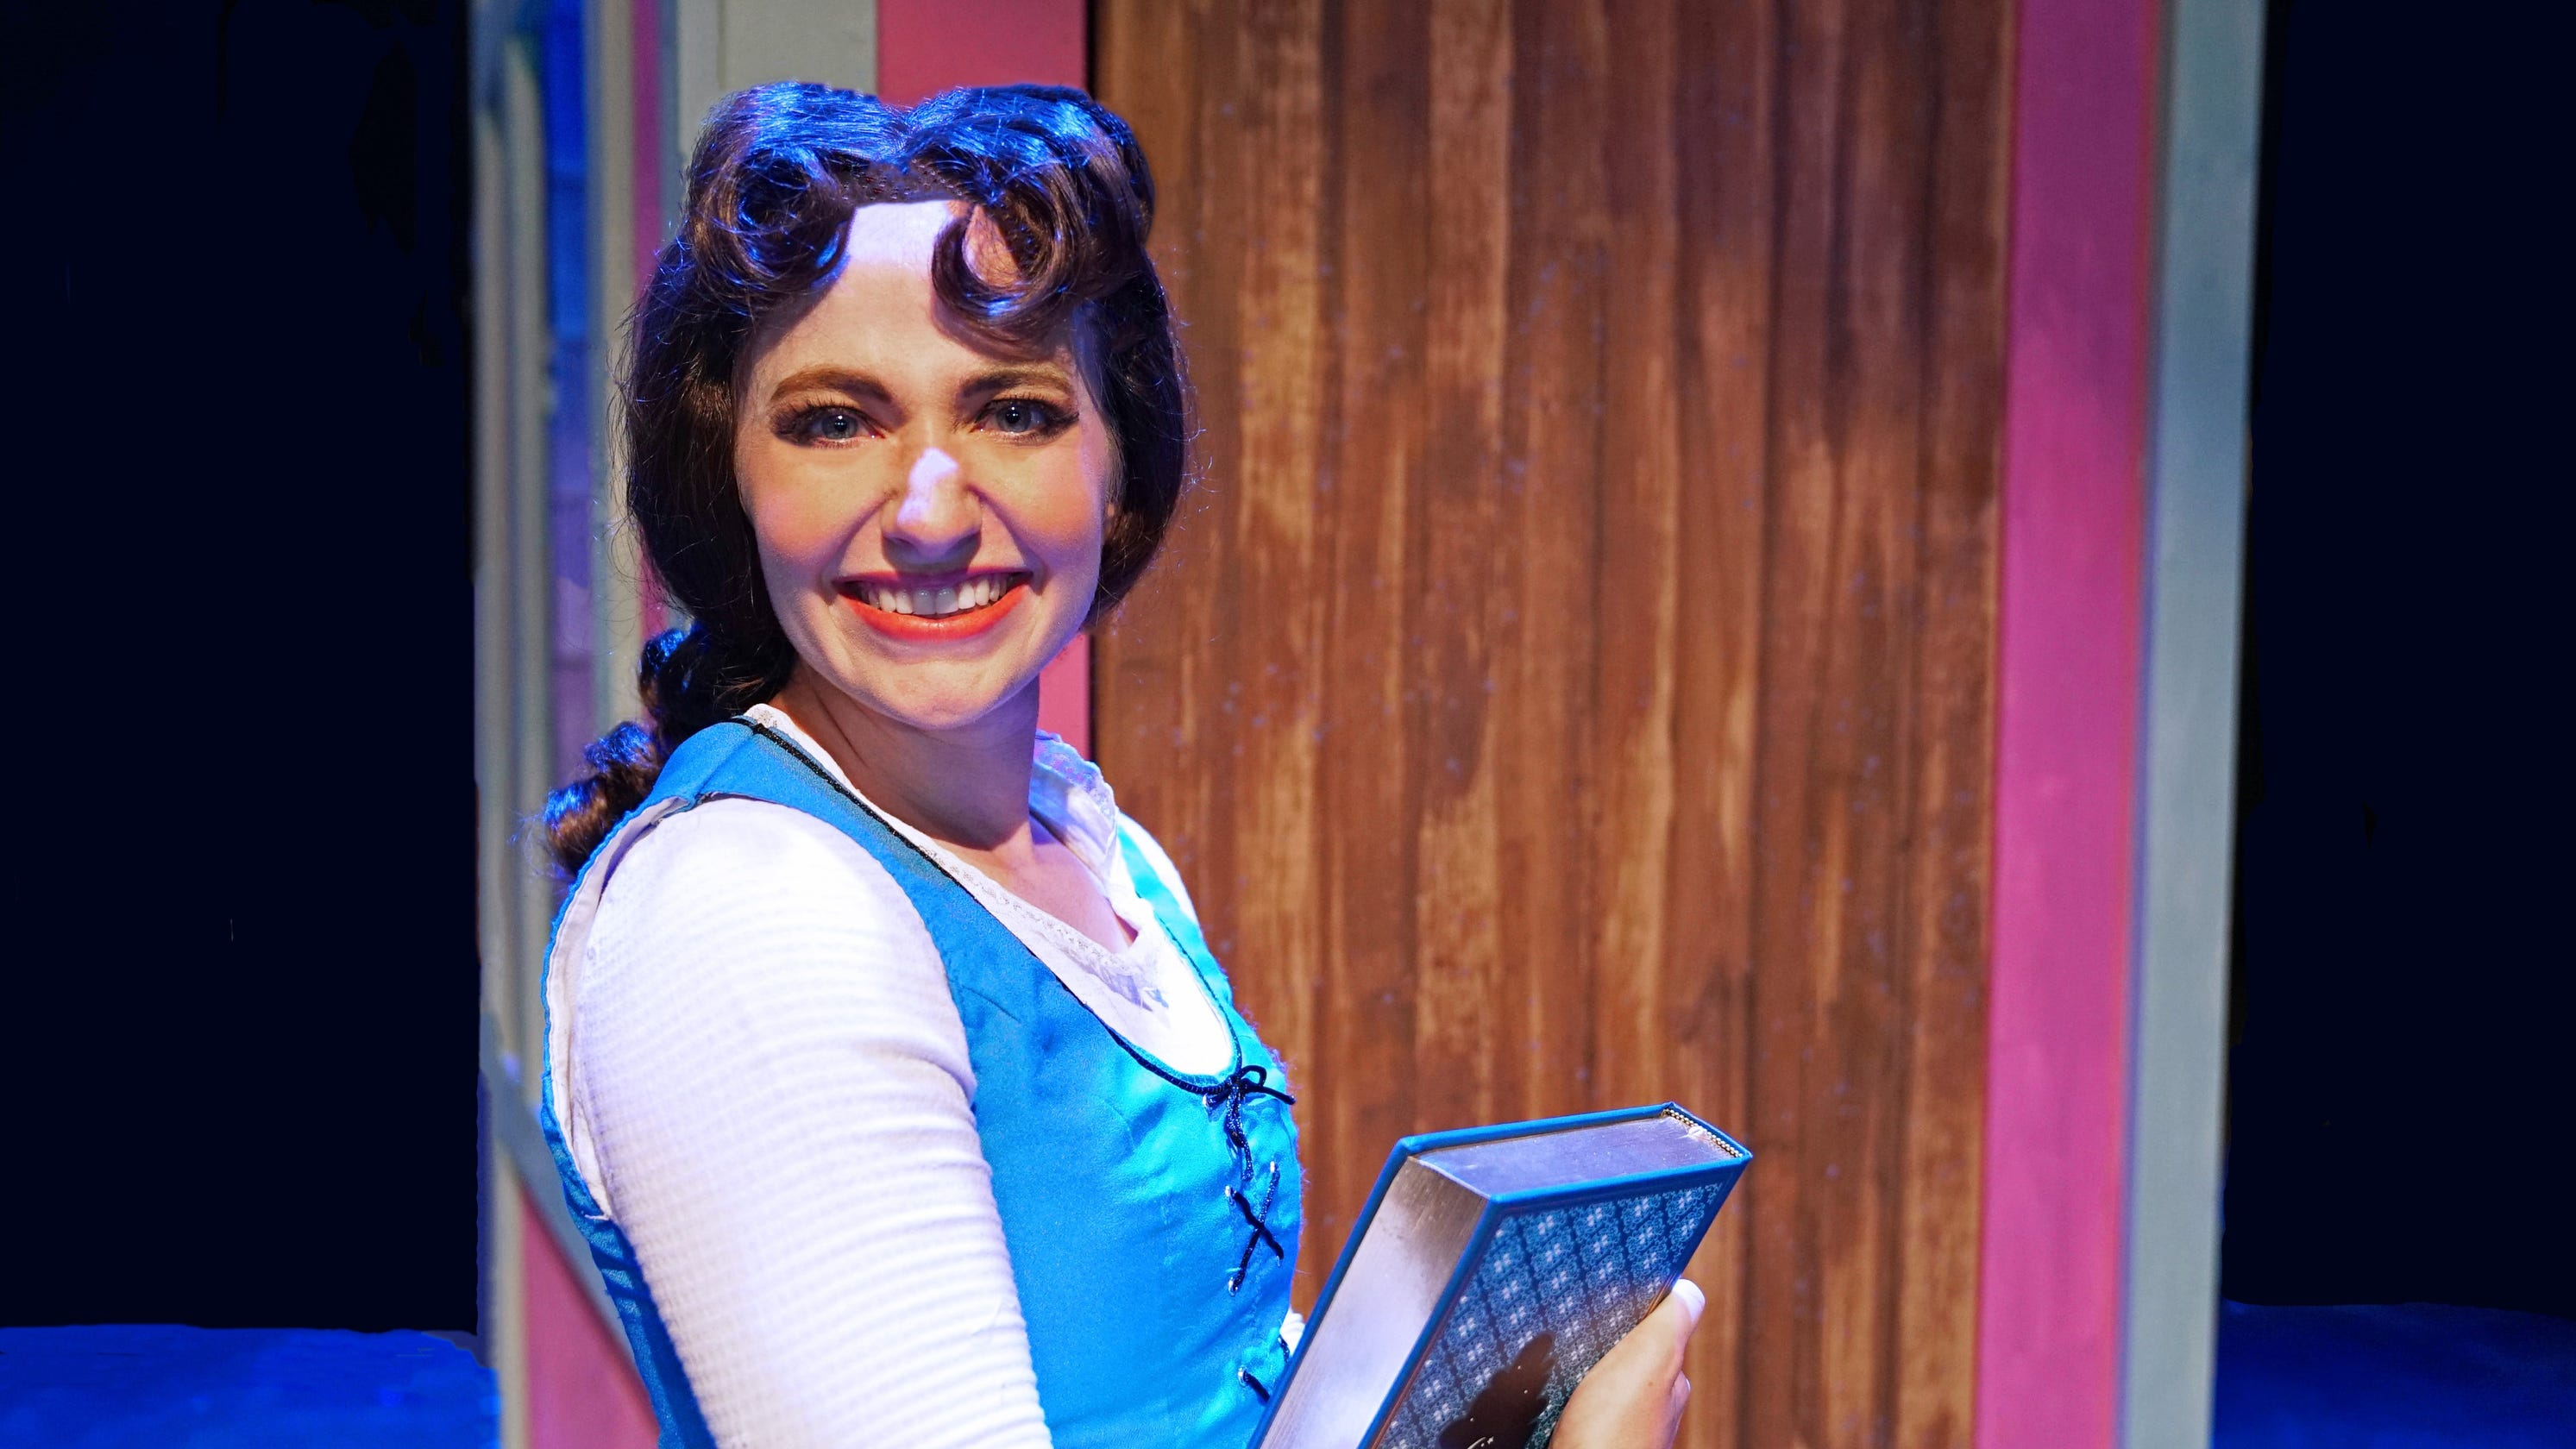 Haven Gaston henegar center in melbourne stages disney's 'beauty and the